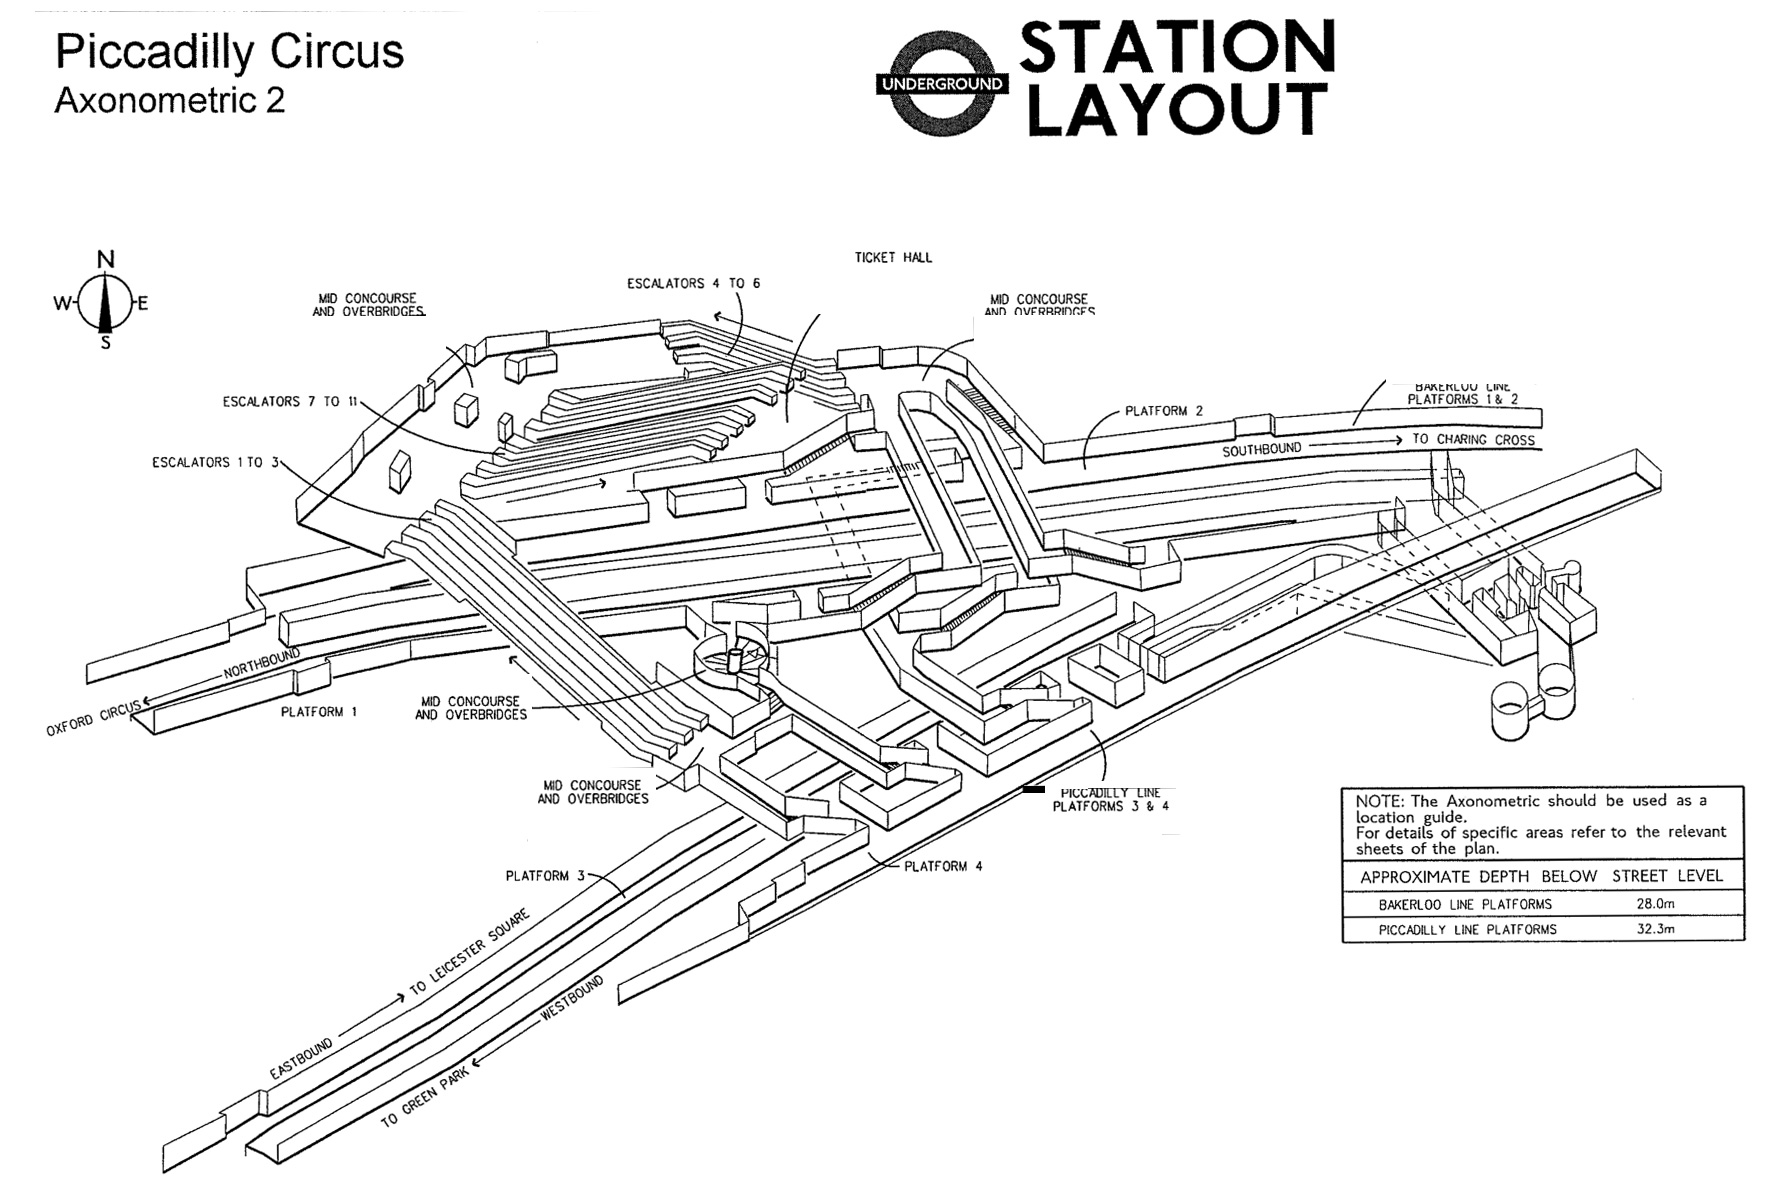 diagramme-3d-station-metro-londres-picadilly-circus-platforms-11